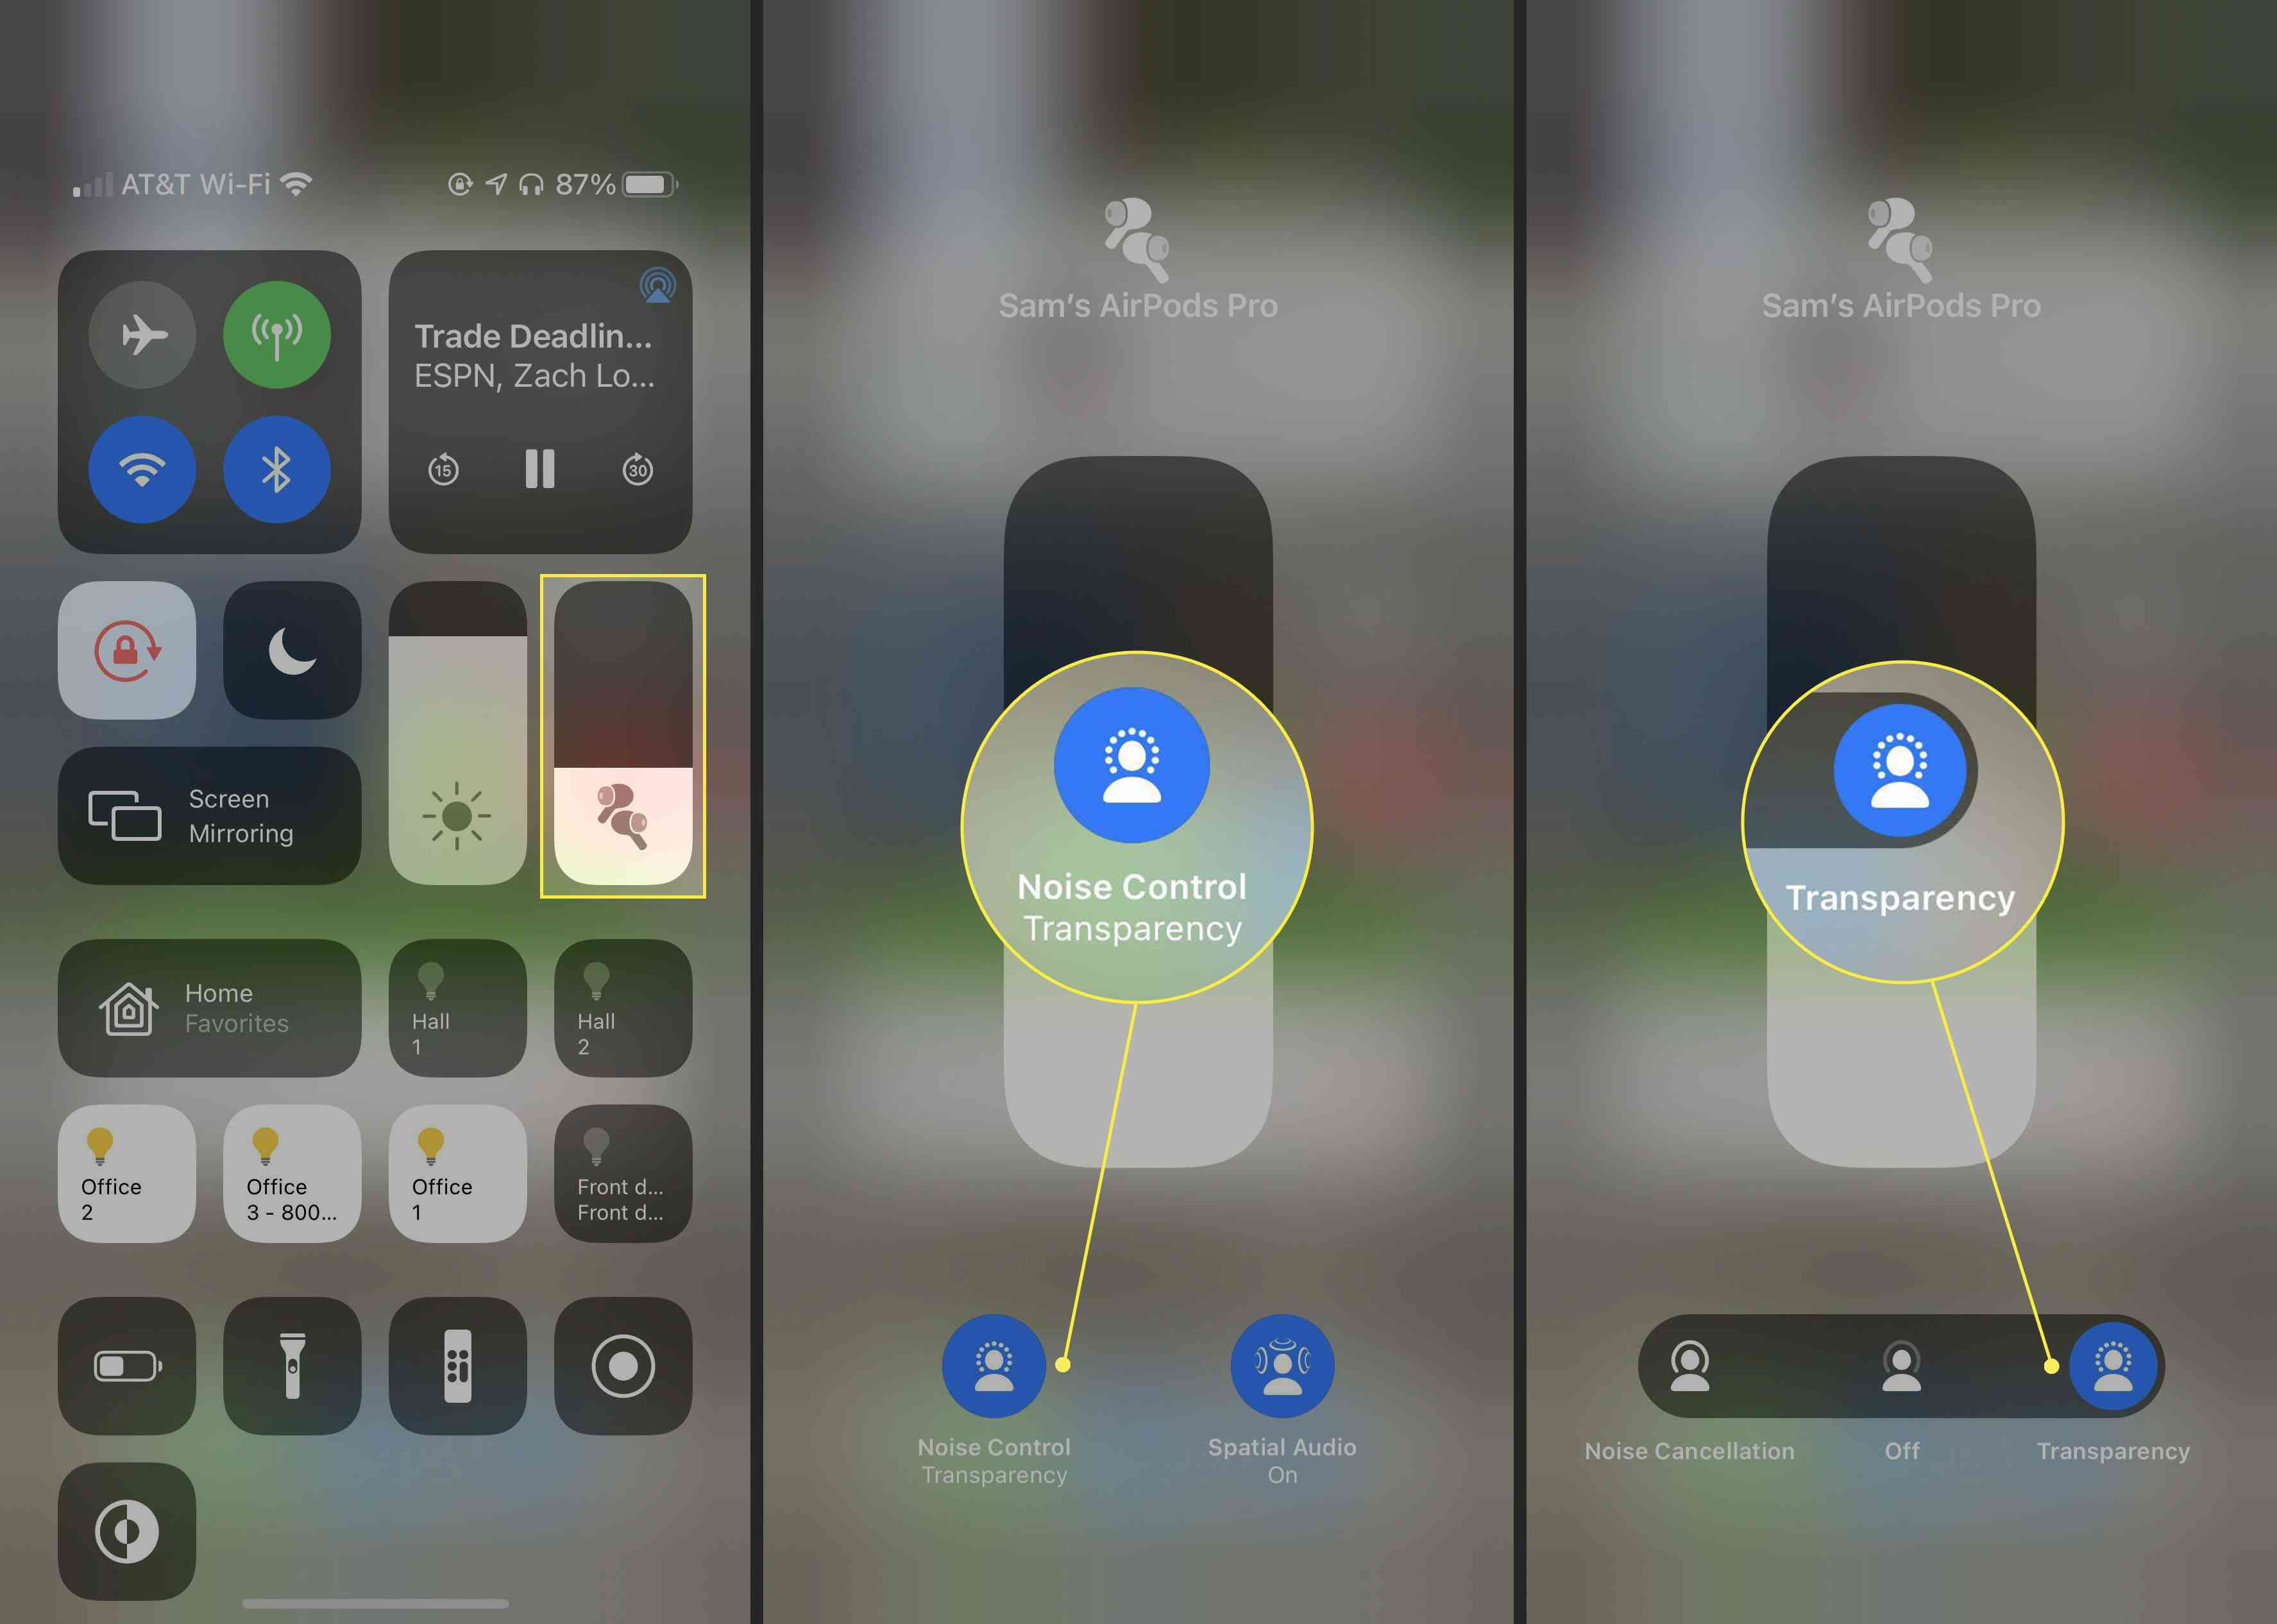 Steps to turn on Transparency mode on AirPods via Control Center on an iPhone.